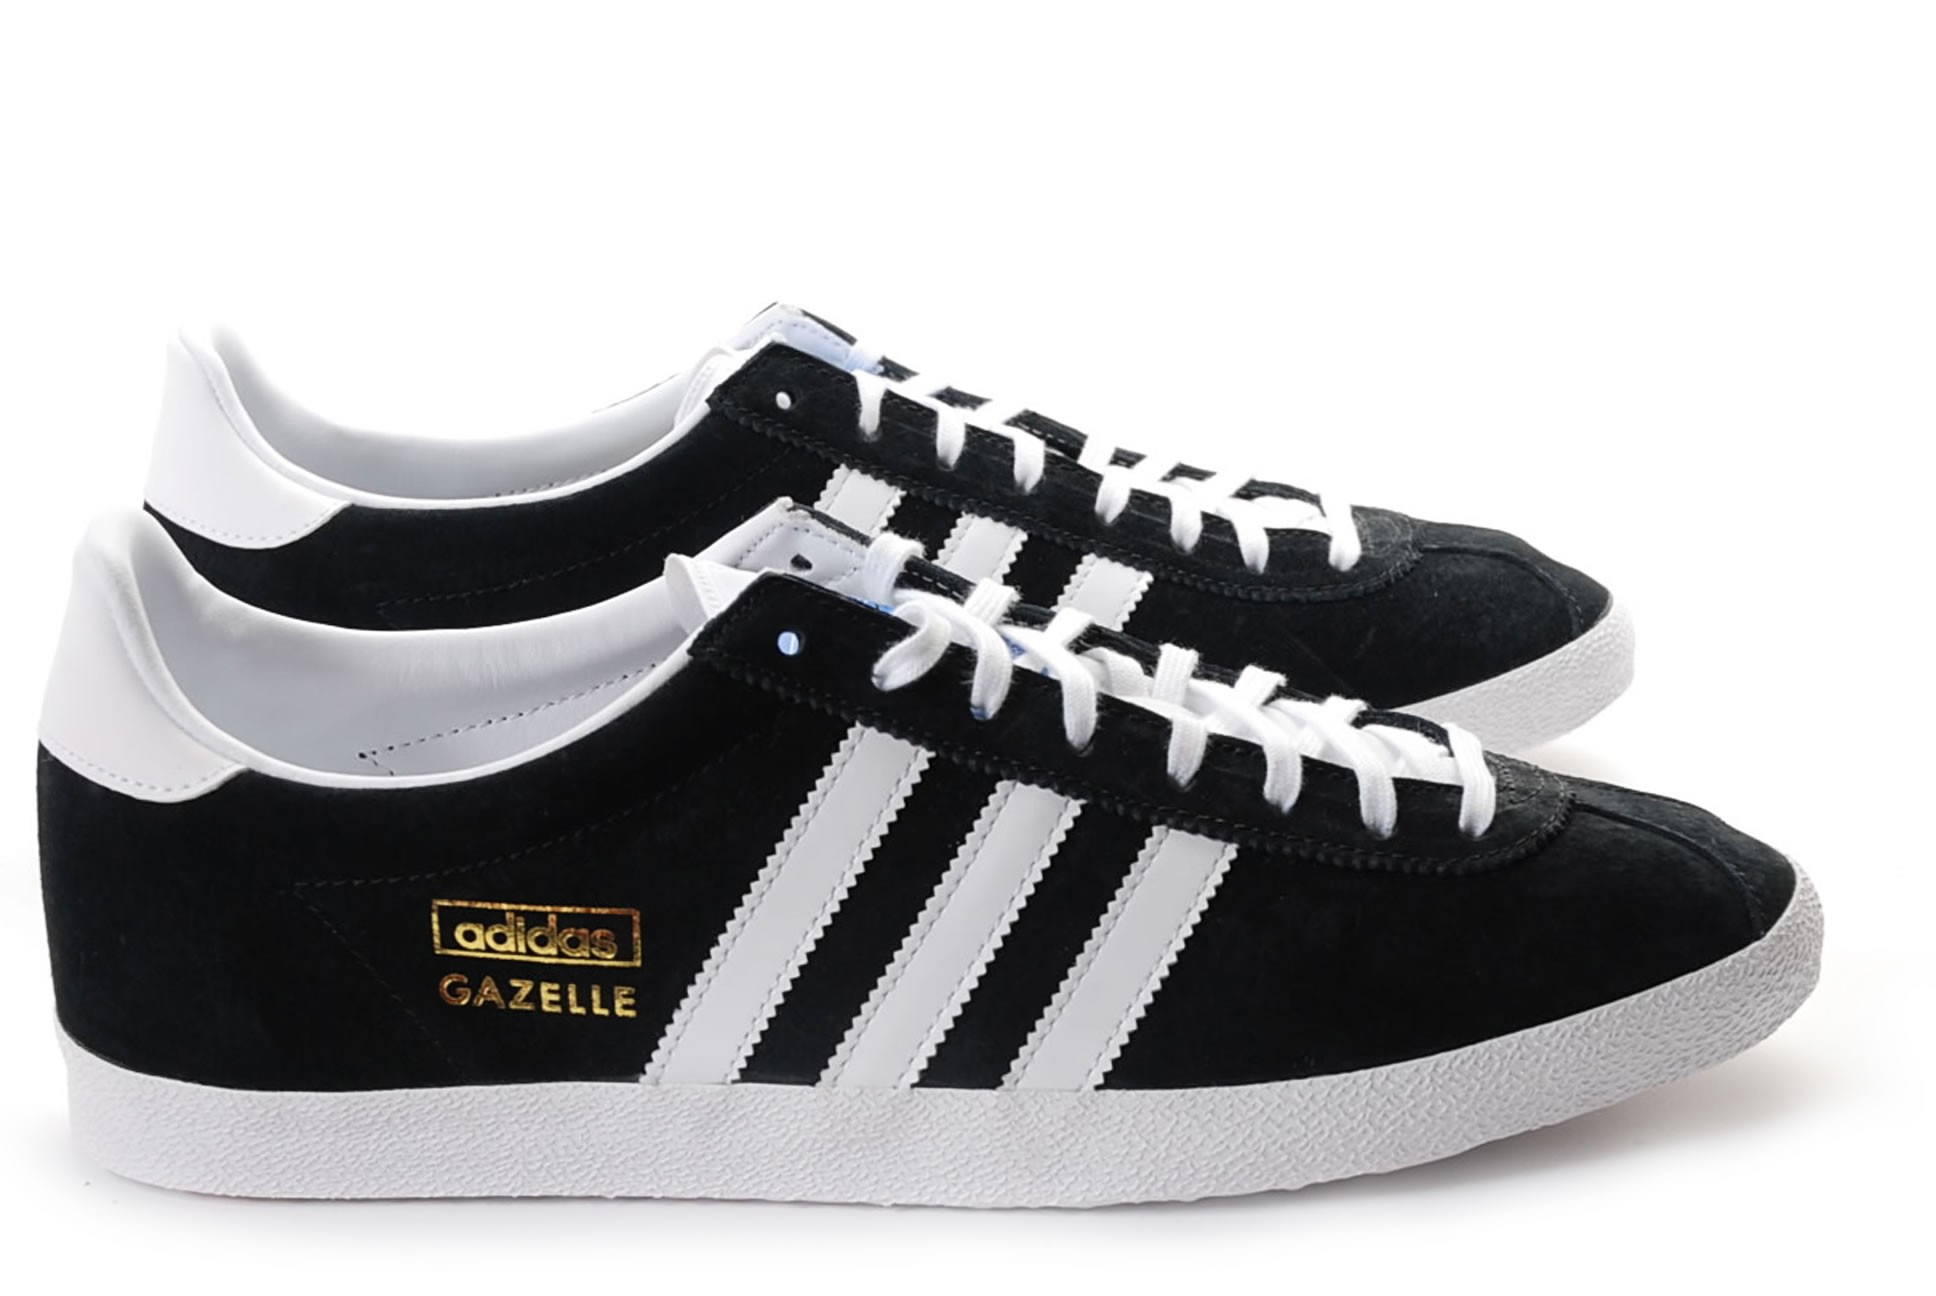 Cher Pas Gazelle Chaussure Femme Adidas DHYE2e9bWI